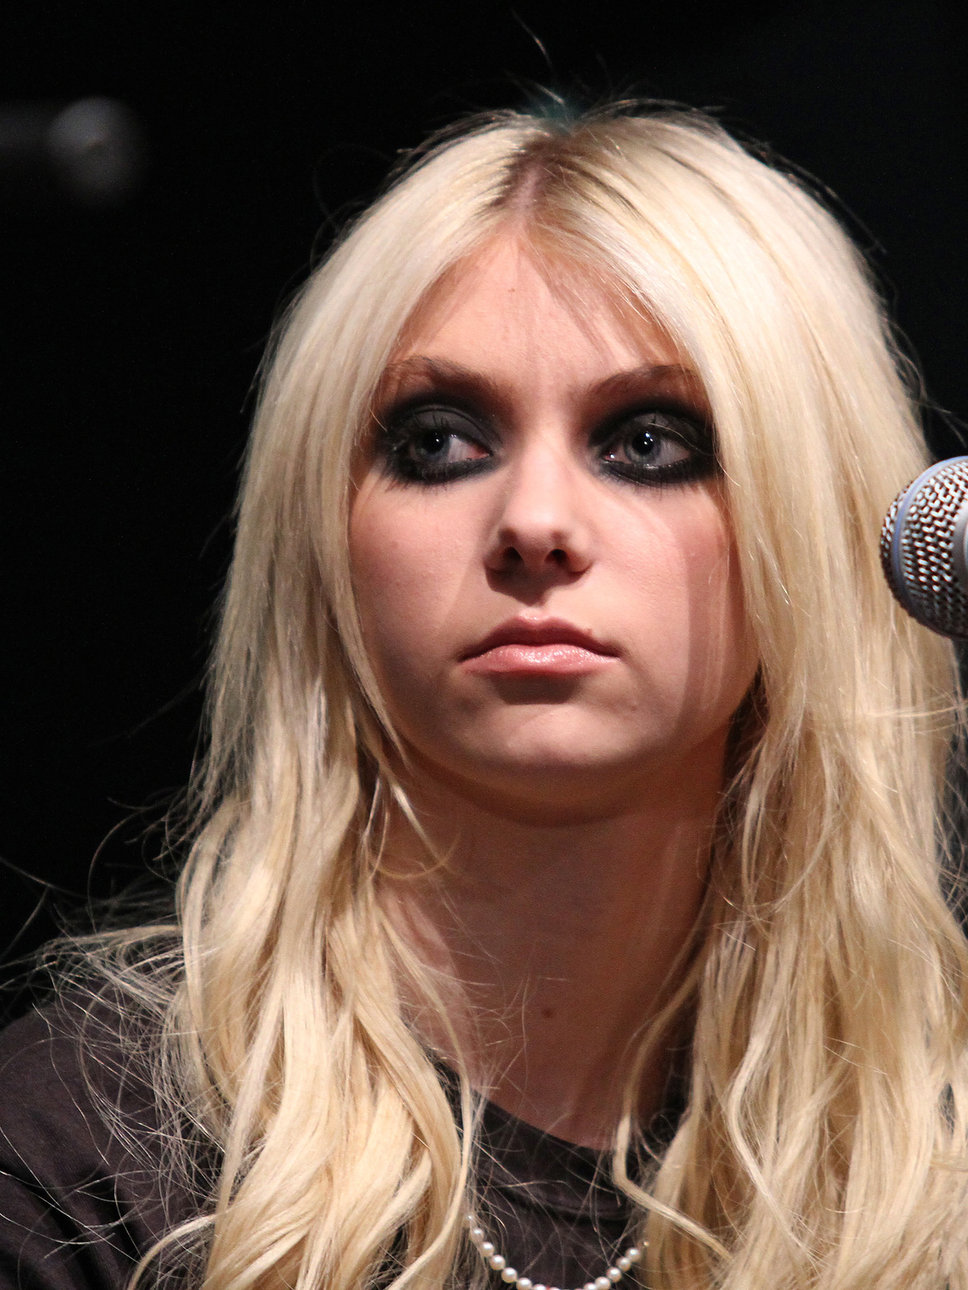 Taylor Momsen Photo Gallery3 | Tv Series Posters and Cast Taylor Momsen Posters